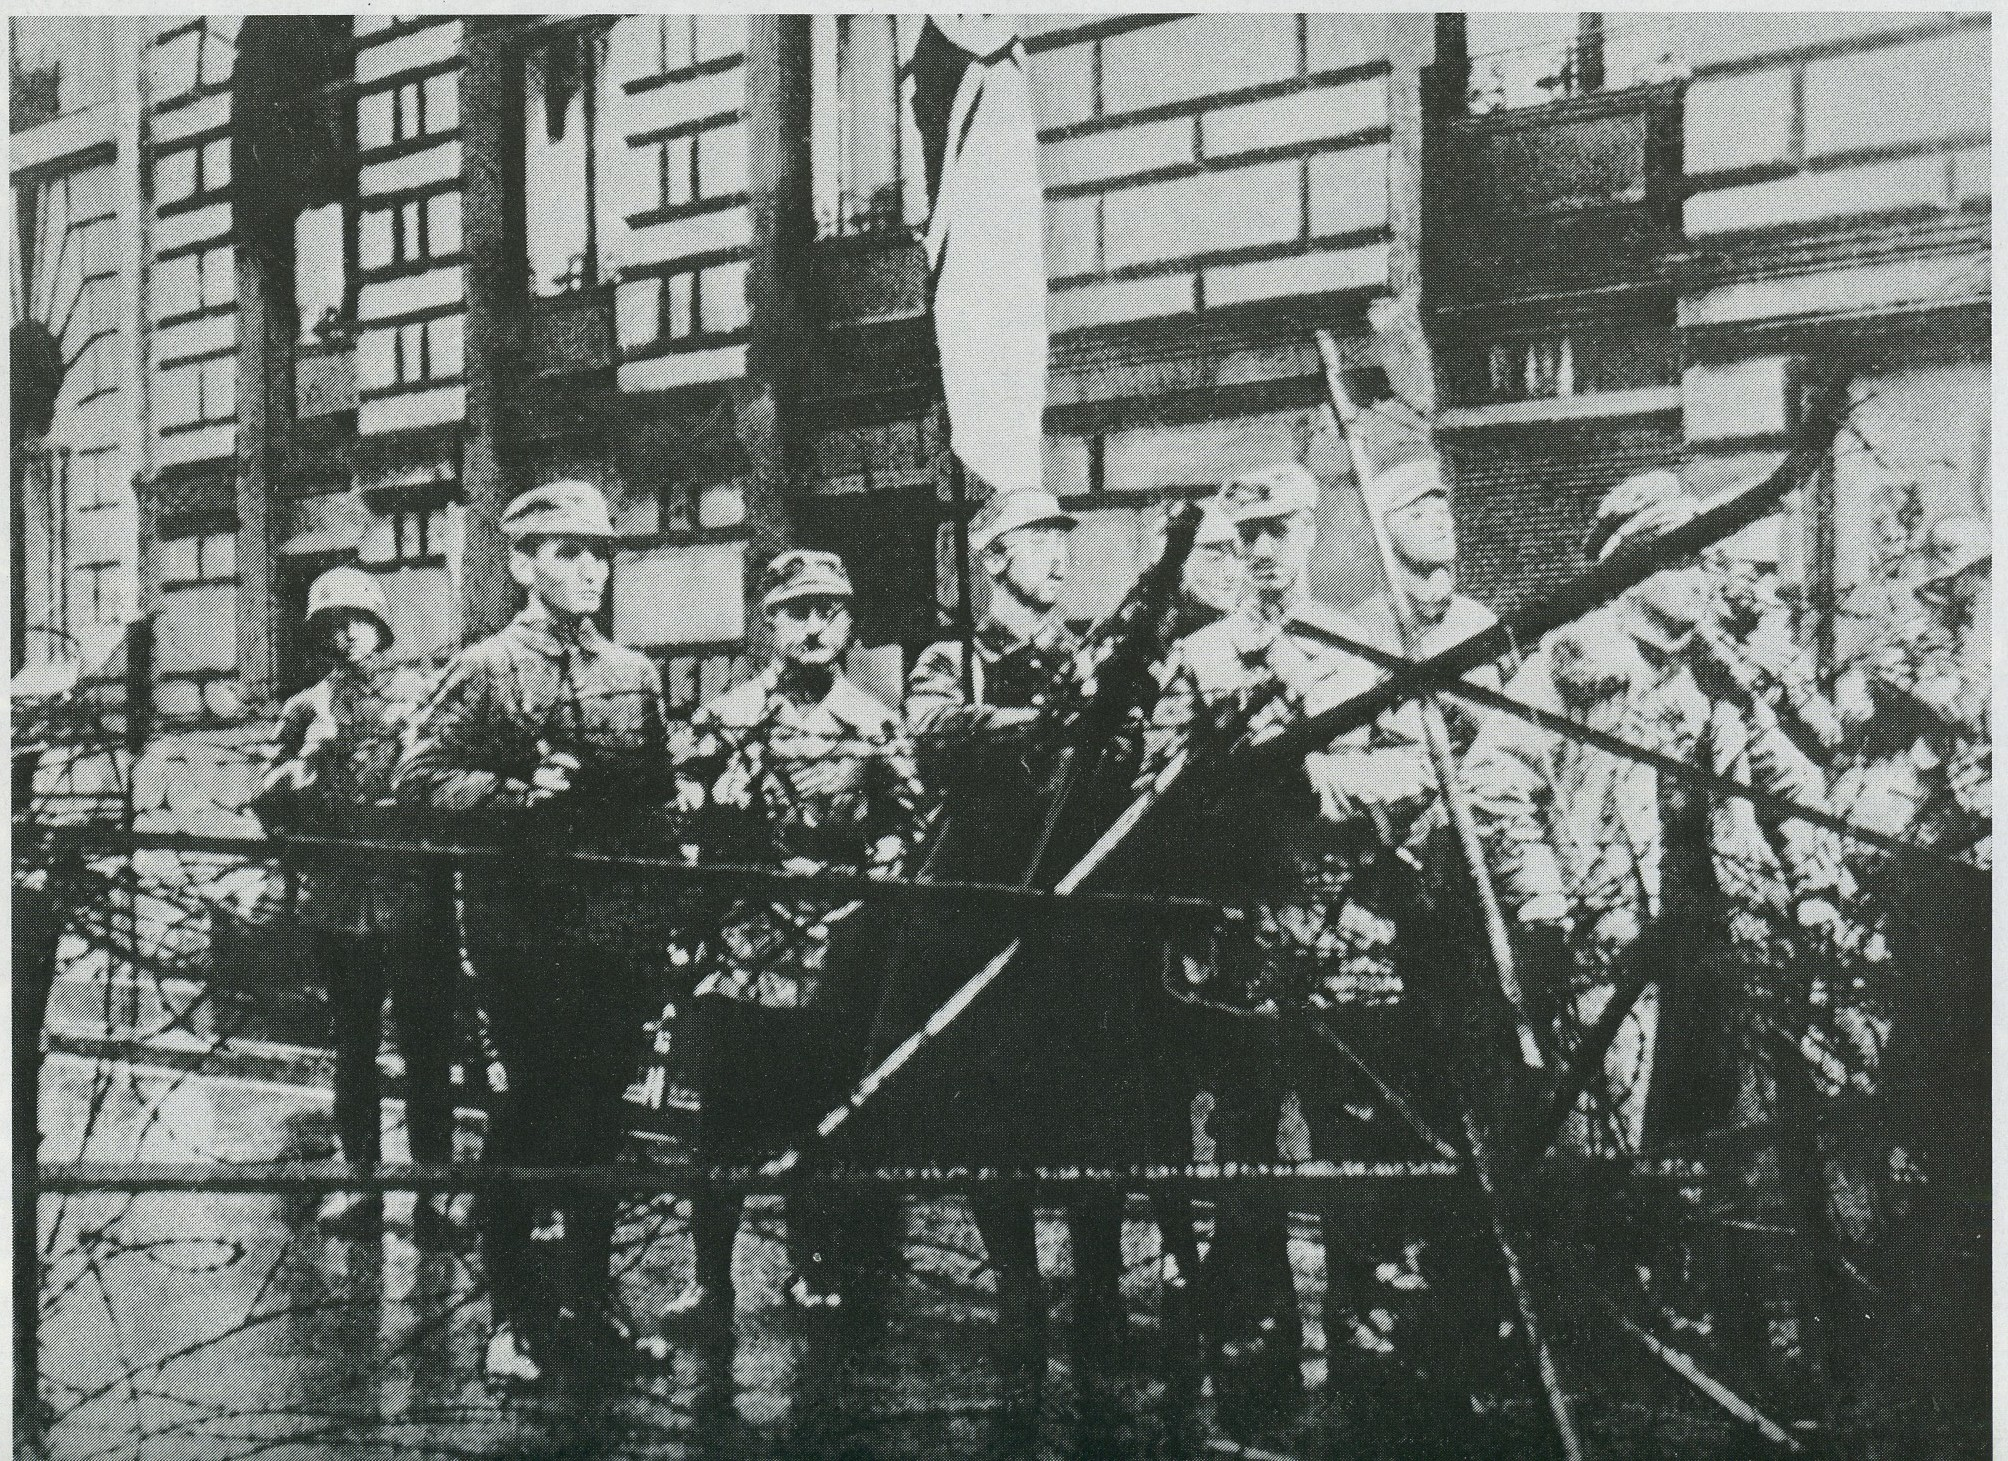 fighters-of-ryoma-who-had-seized+the-building-of-the-war-ministry-during-the-beer-hall-putsch-munich-1923